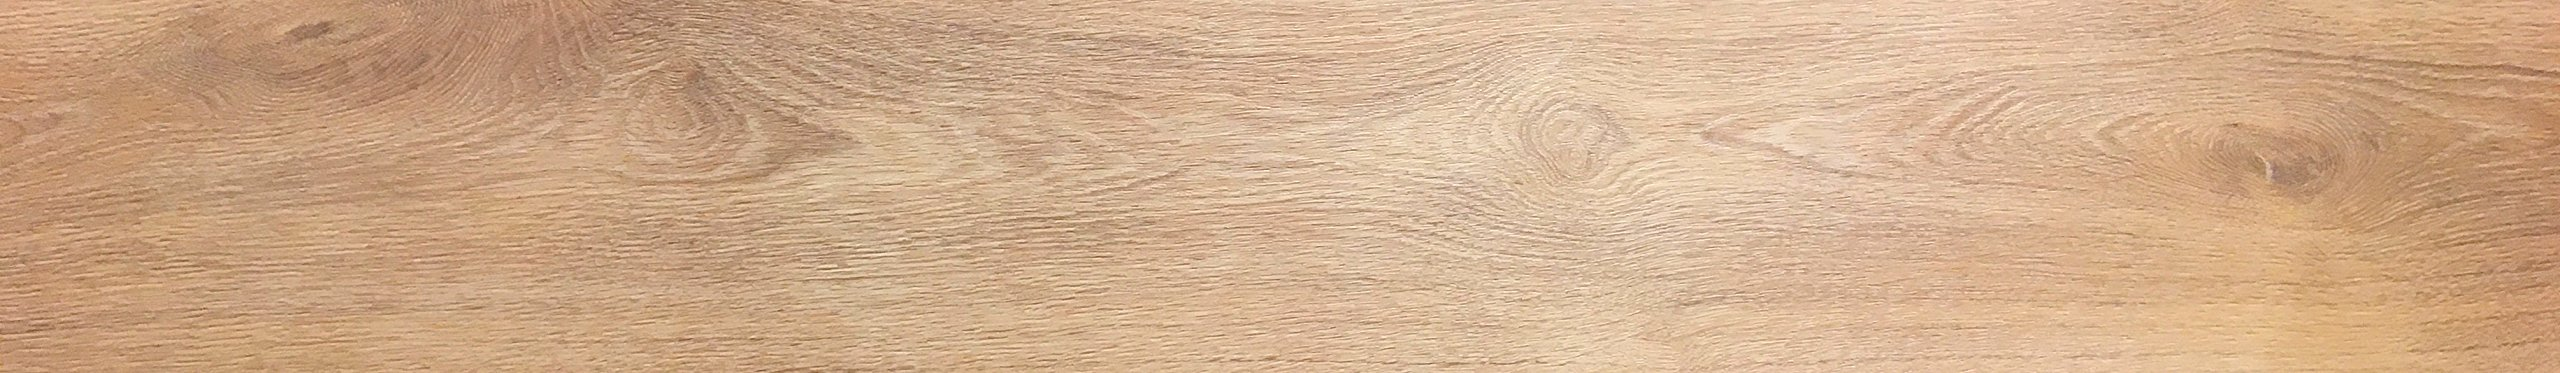 Portico Systems NVR9825 Natures View Flooring, Wheatfields, 7'' x 48'', Vinyl (Pack of 15) by Portico Systems (Image #2)